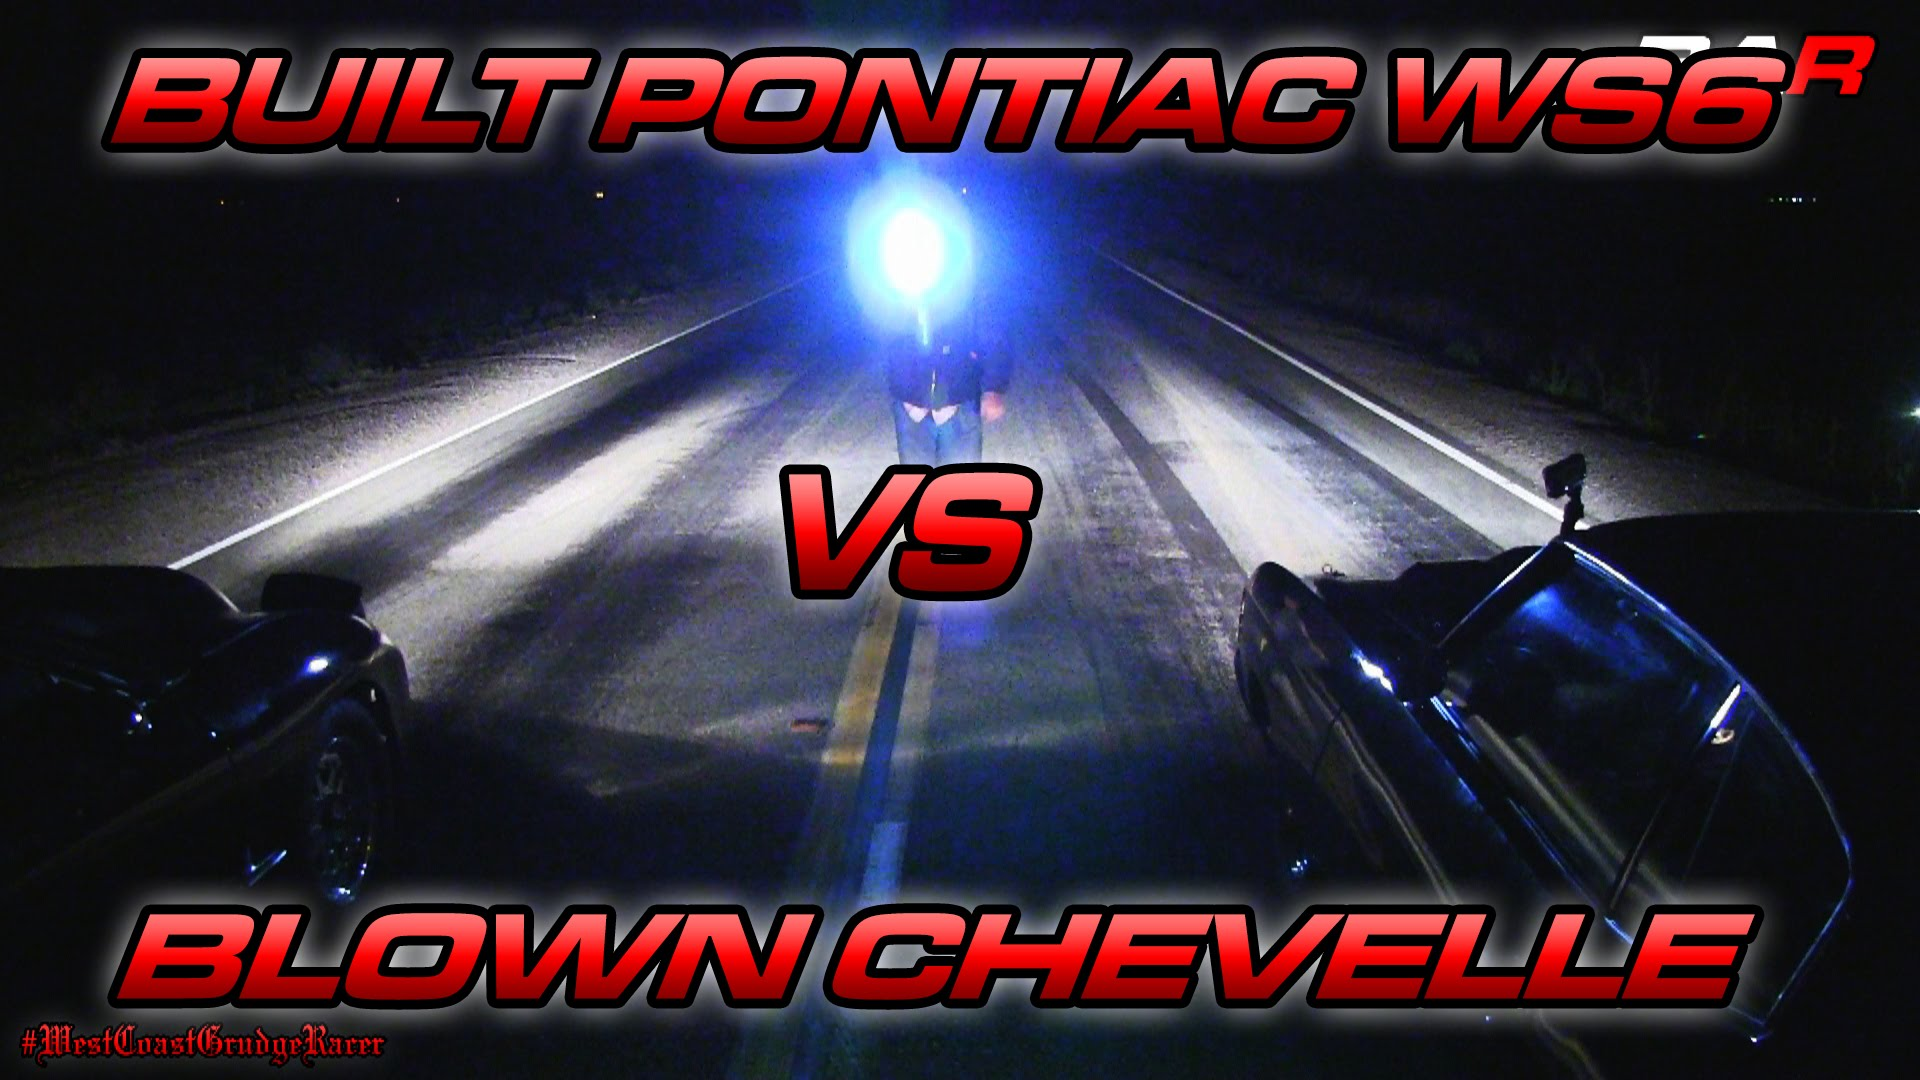 Old School Blown Chevelle vs. New School Trans Am WS6